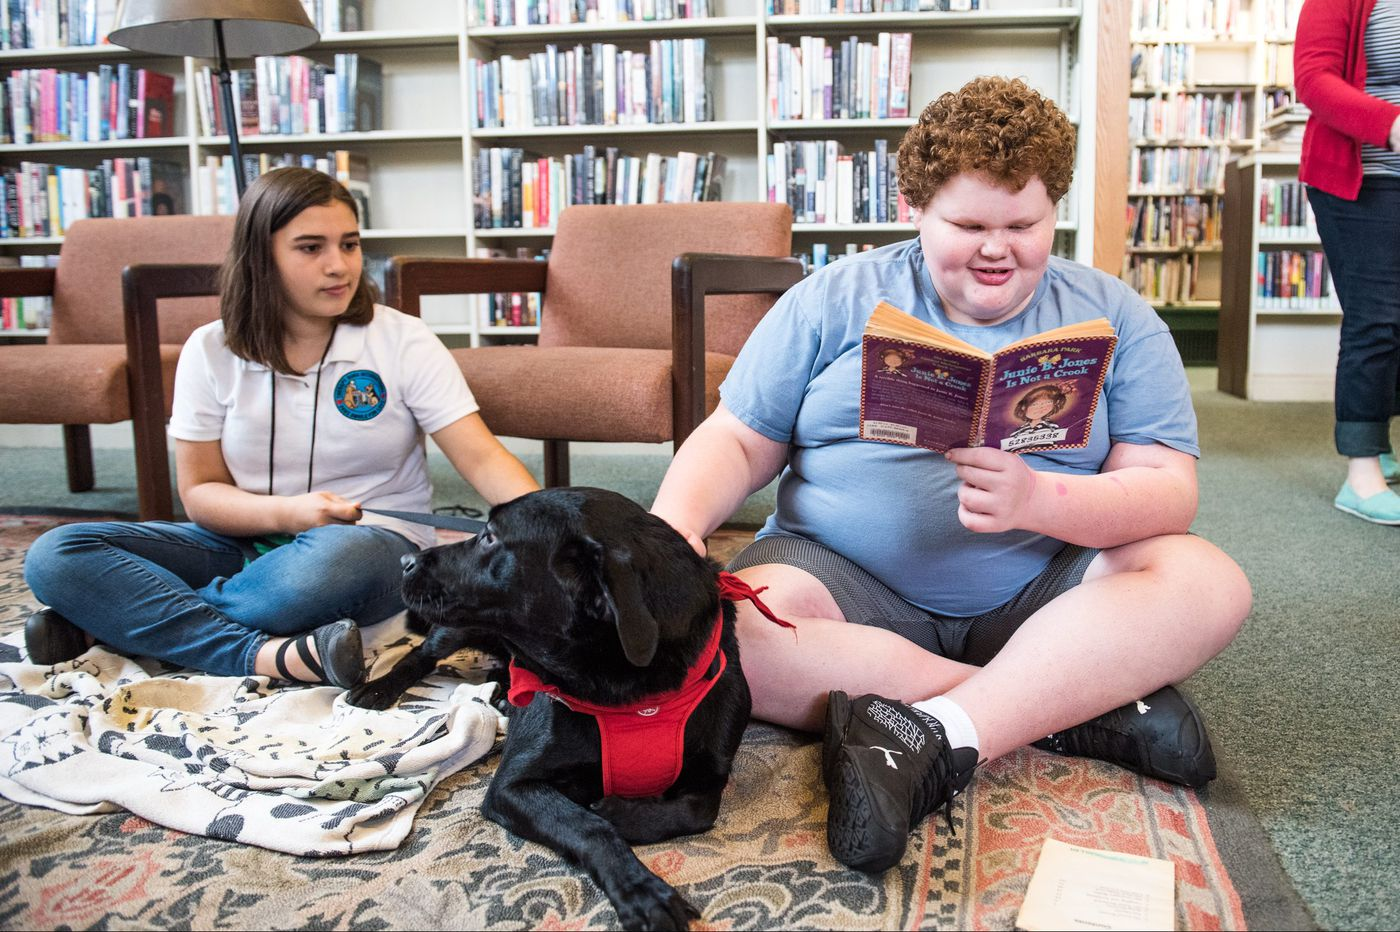 'The dog doesn't care if you mess up some words': Why Philly kids are reading to pooches